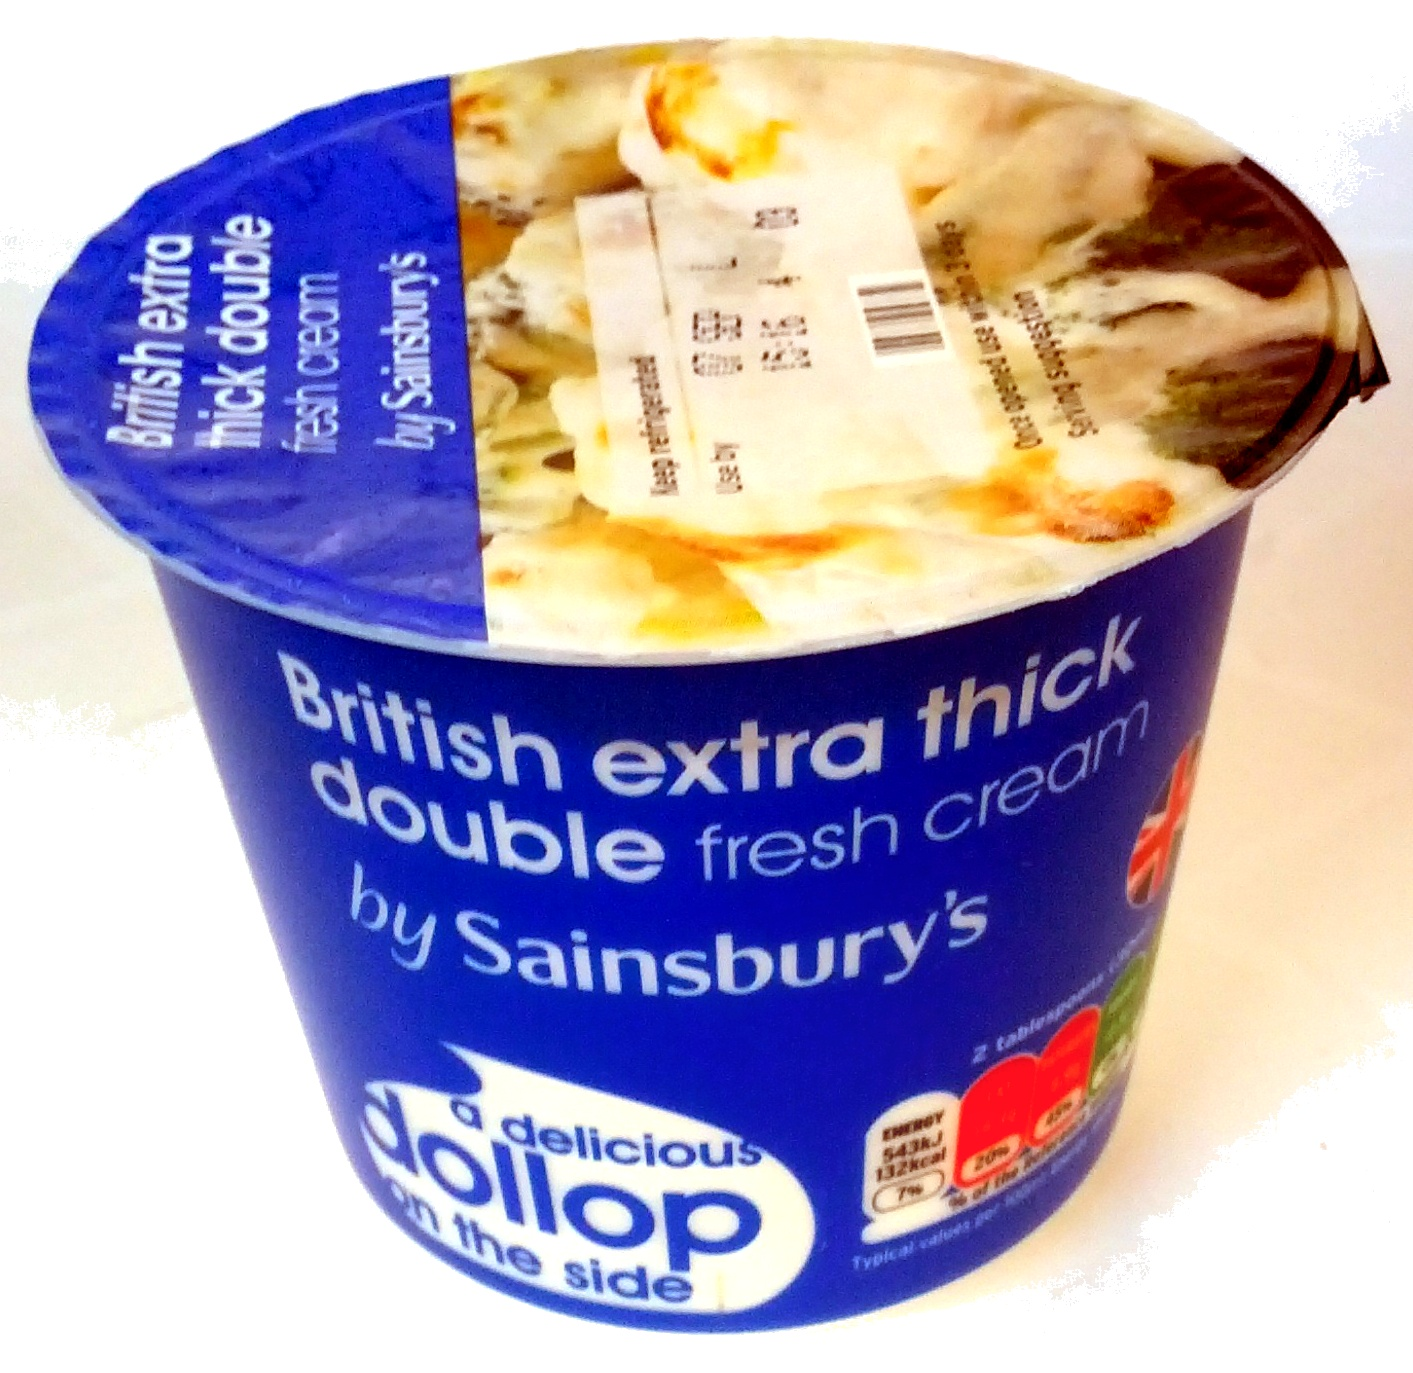 British extra thick double fresh cream - Product - en